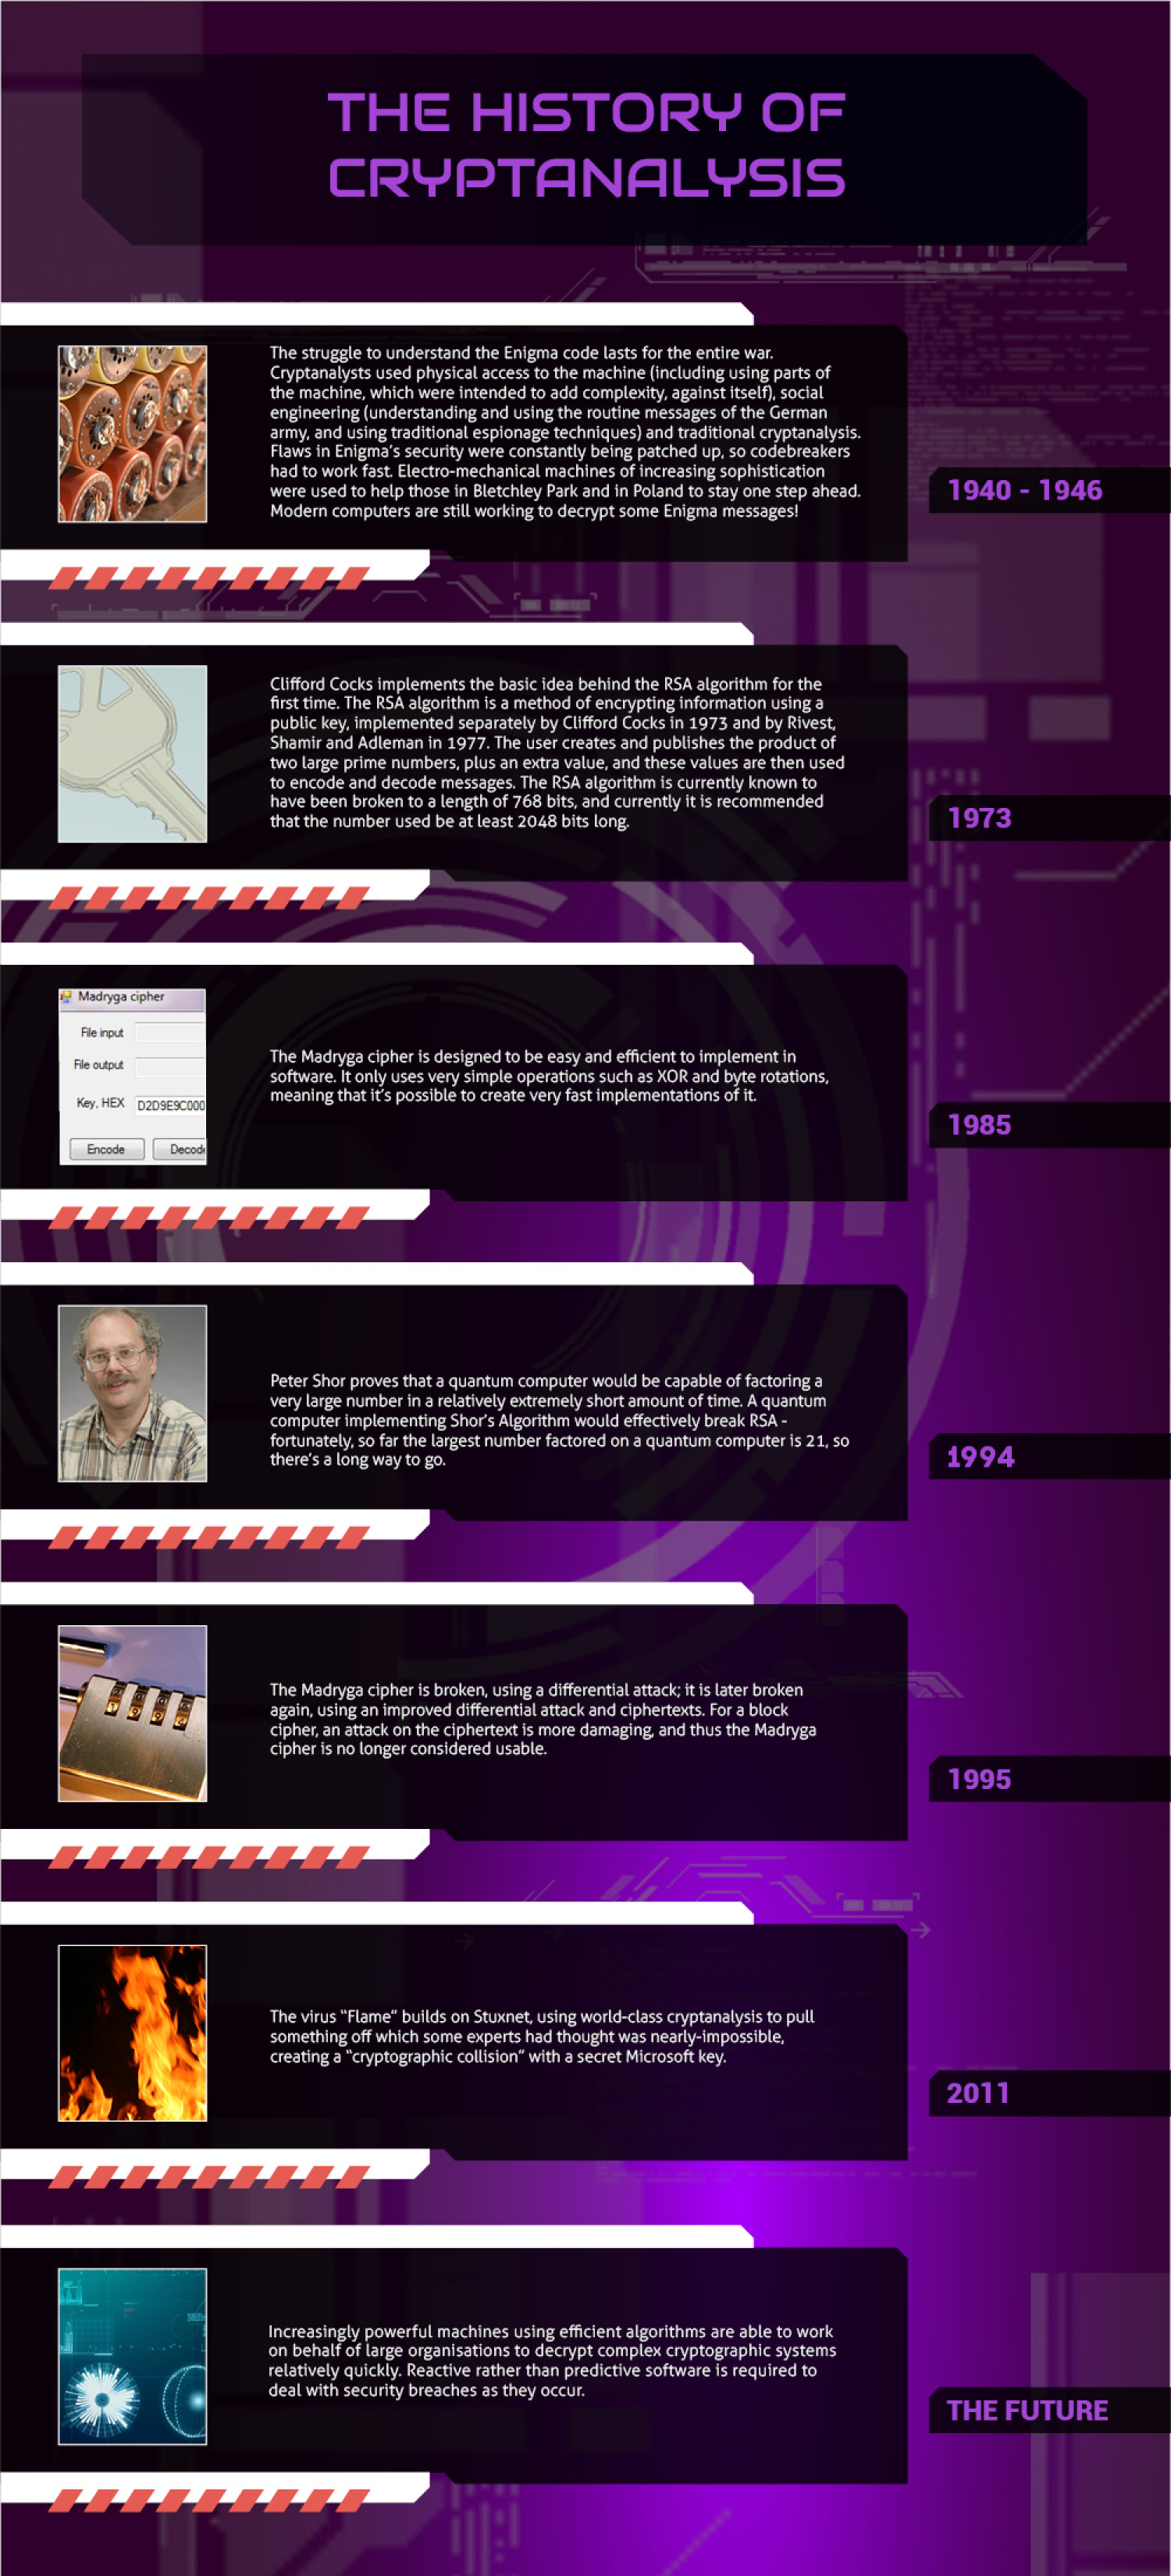 The History of Cryptanalysis  Infographic